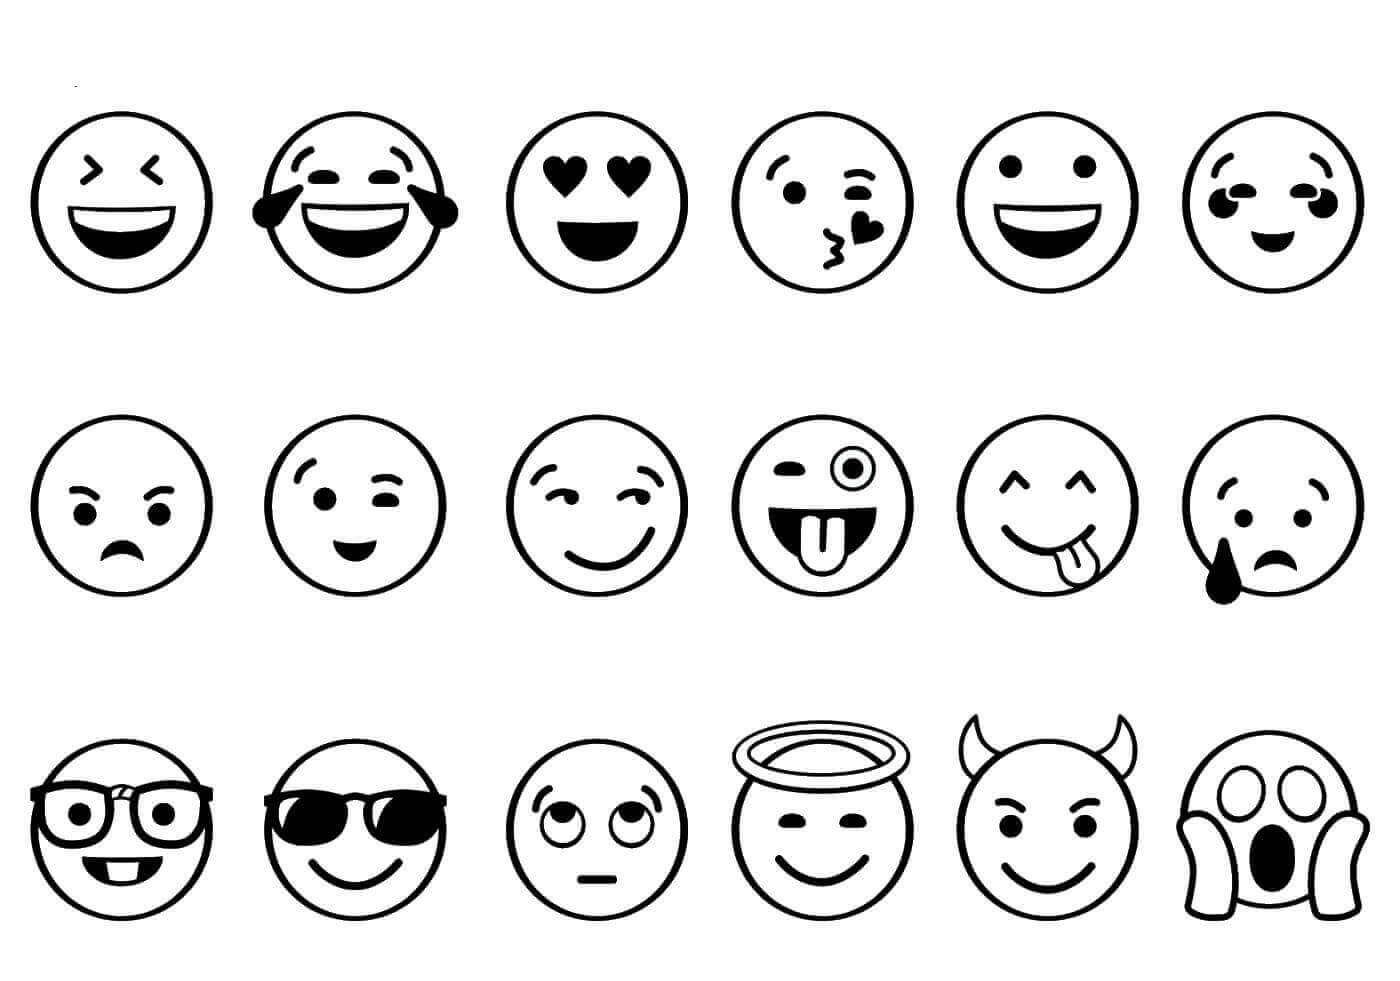 Emoji Printable Coloring Sheets  Free Printable Emoji Coloring Pages